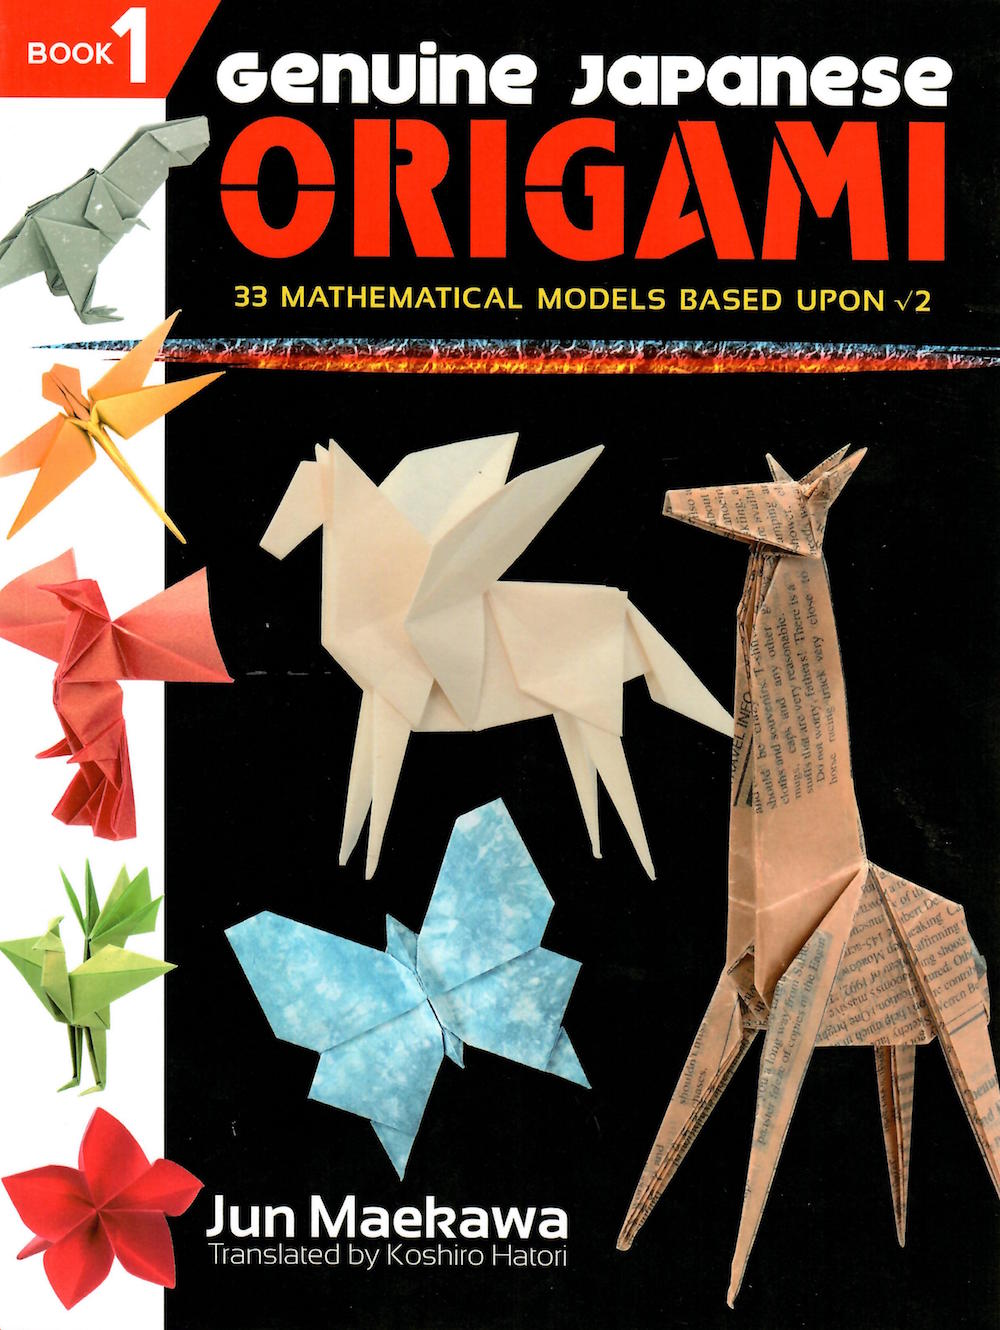 Genuine Japanese Origami 1